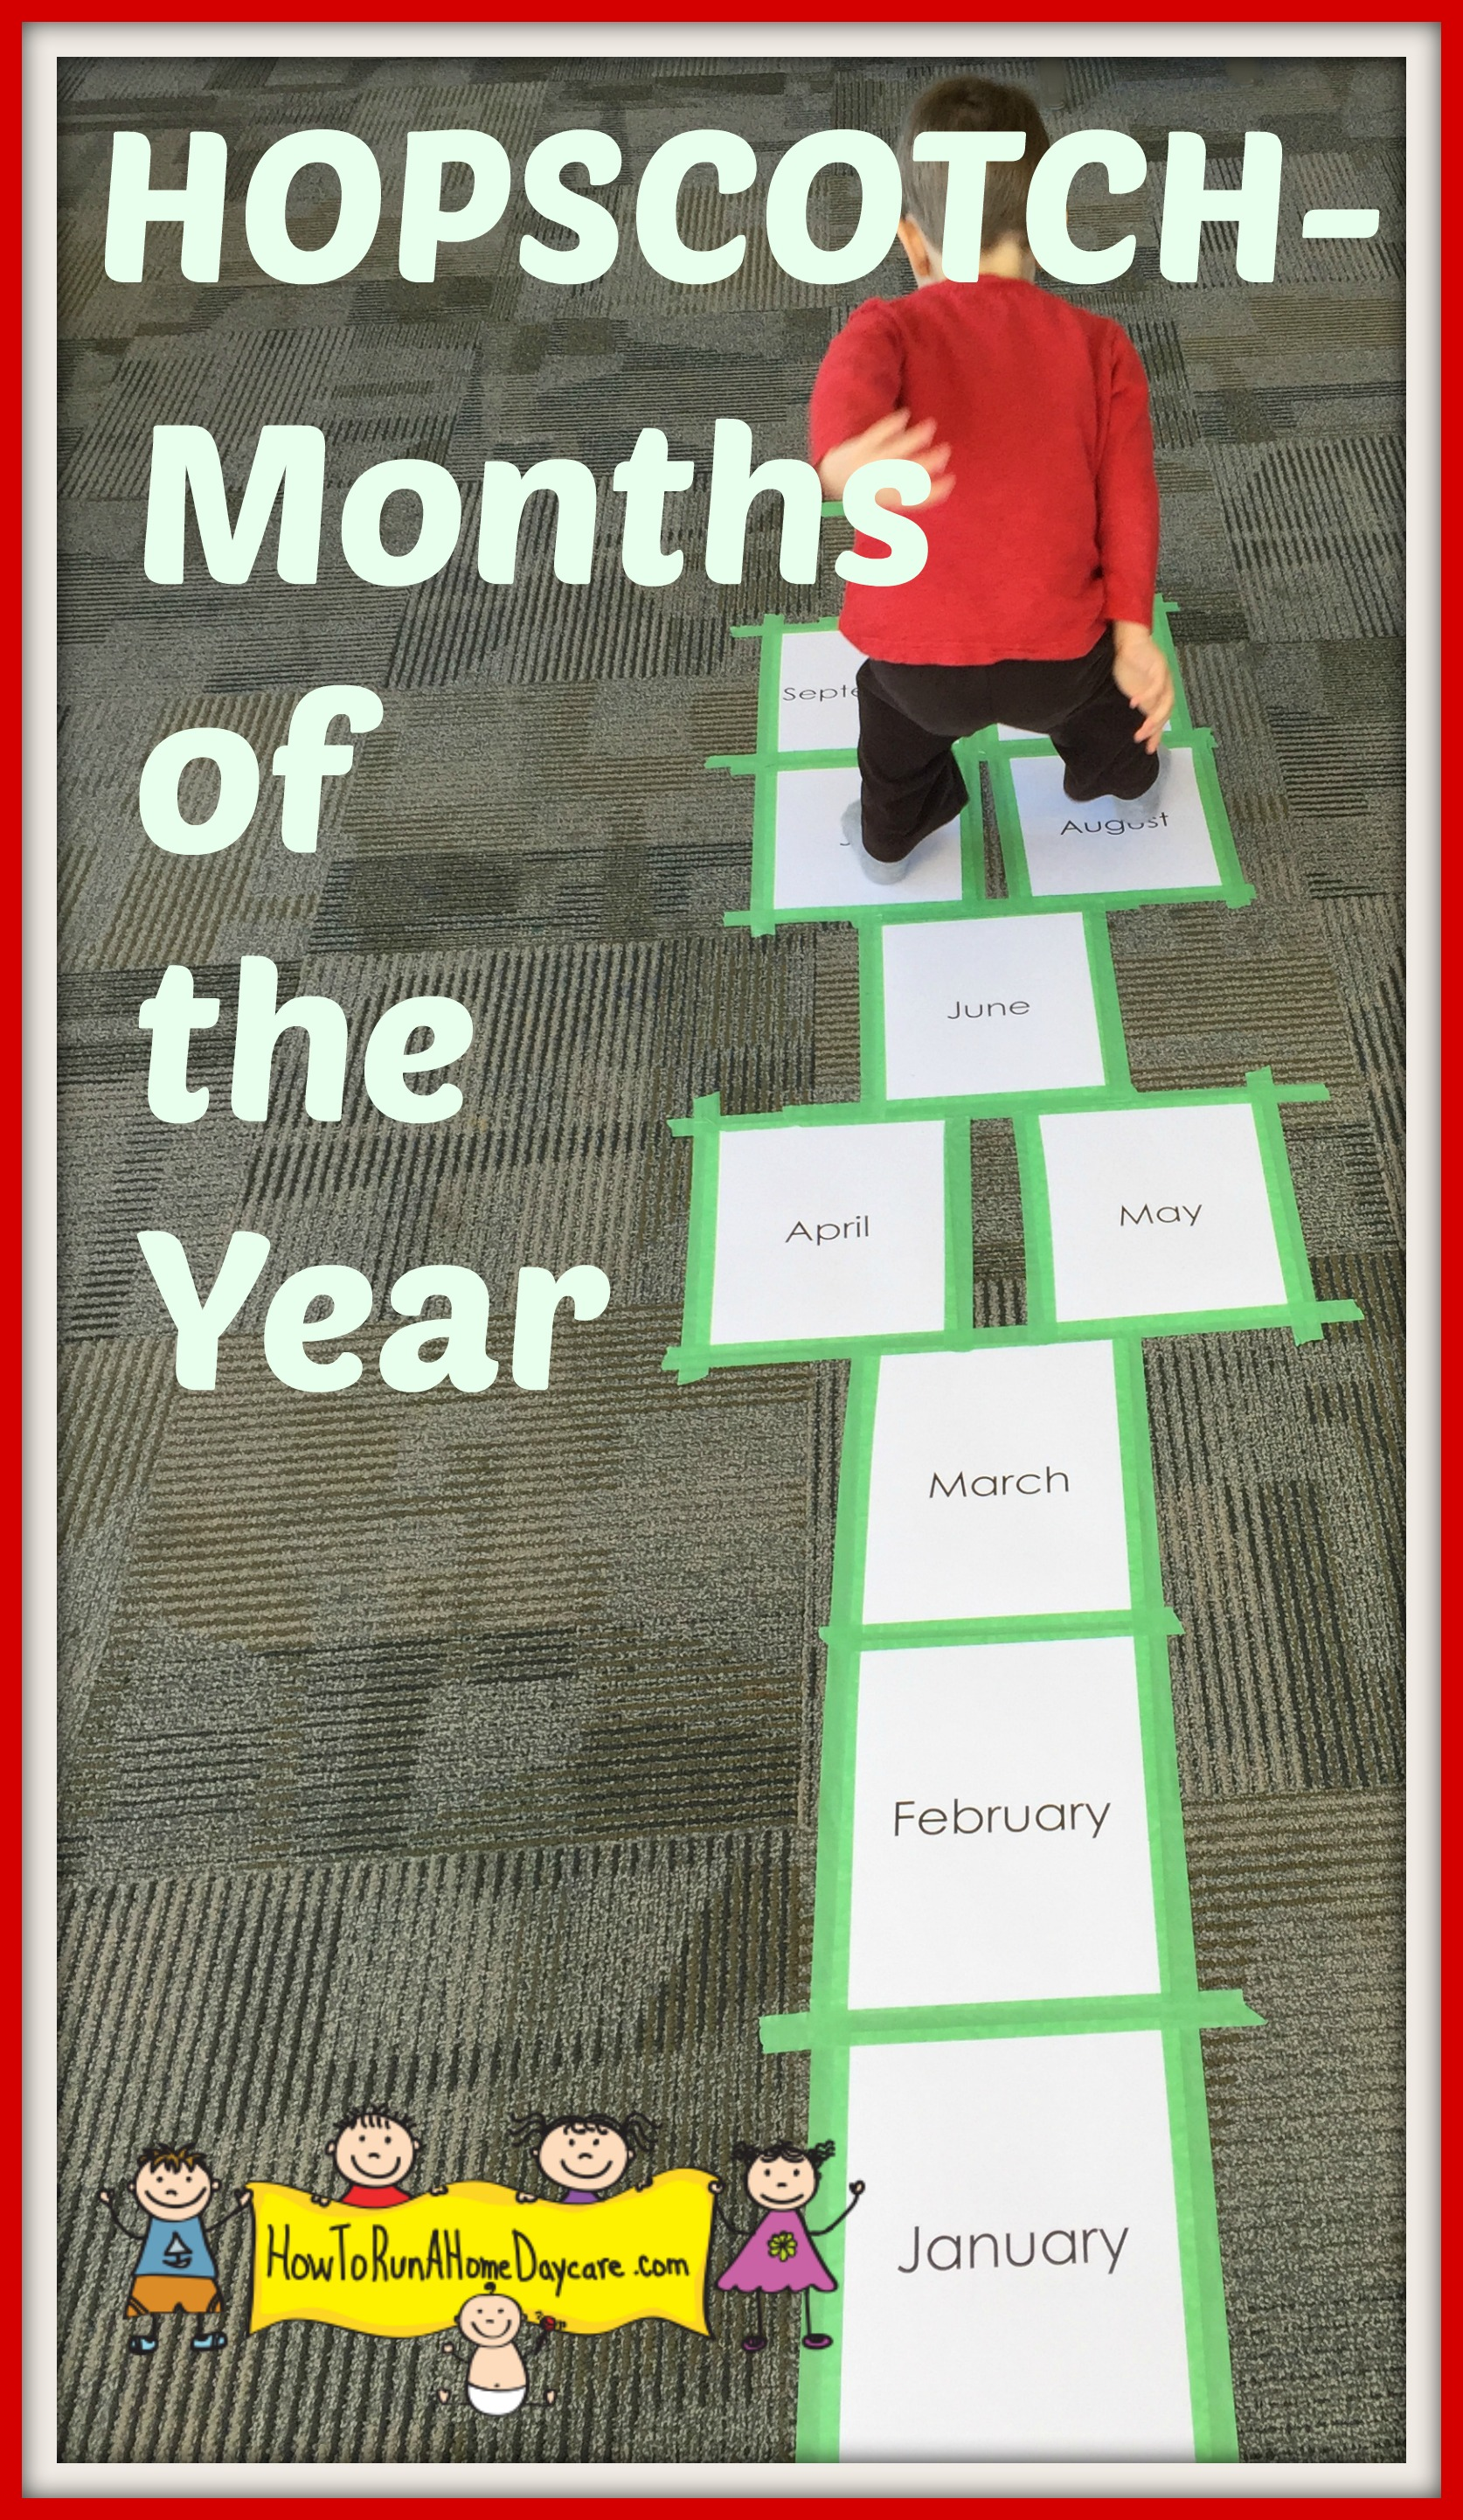 Hopscotch Months Of The Year